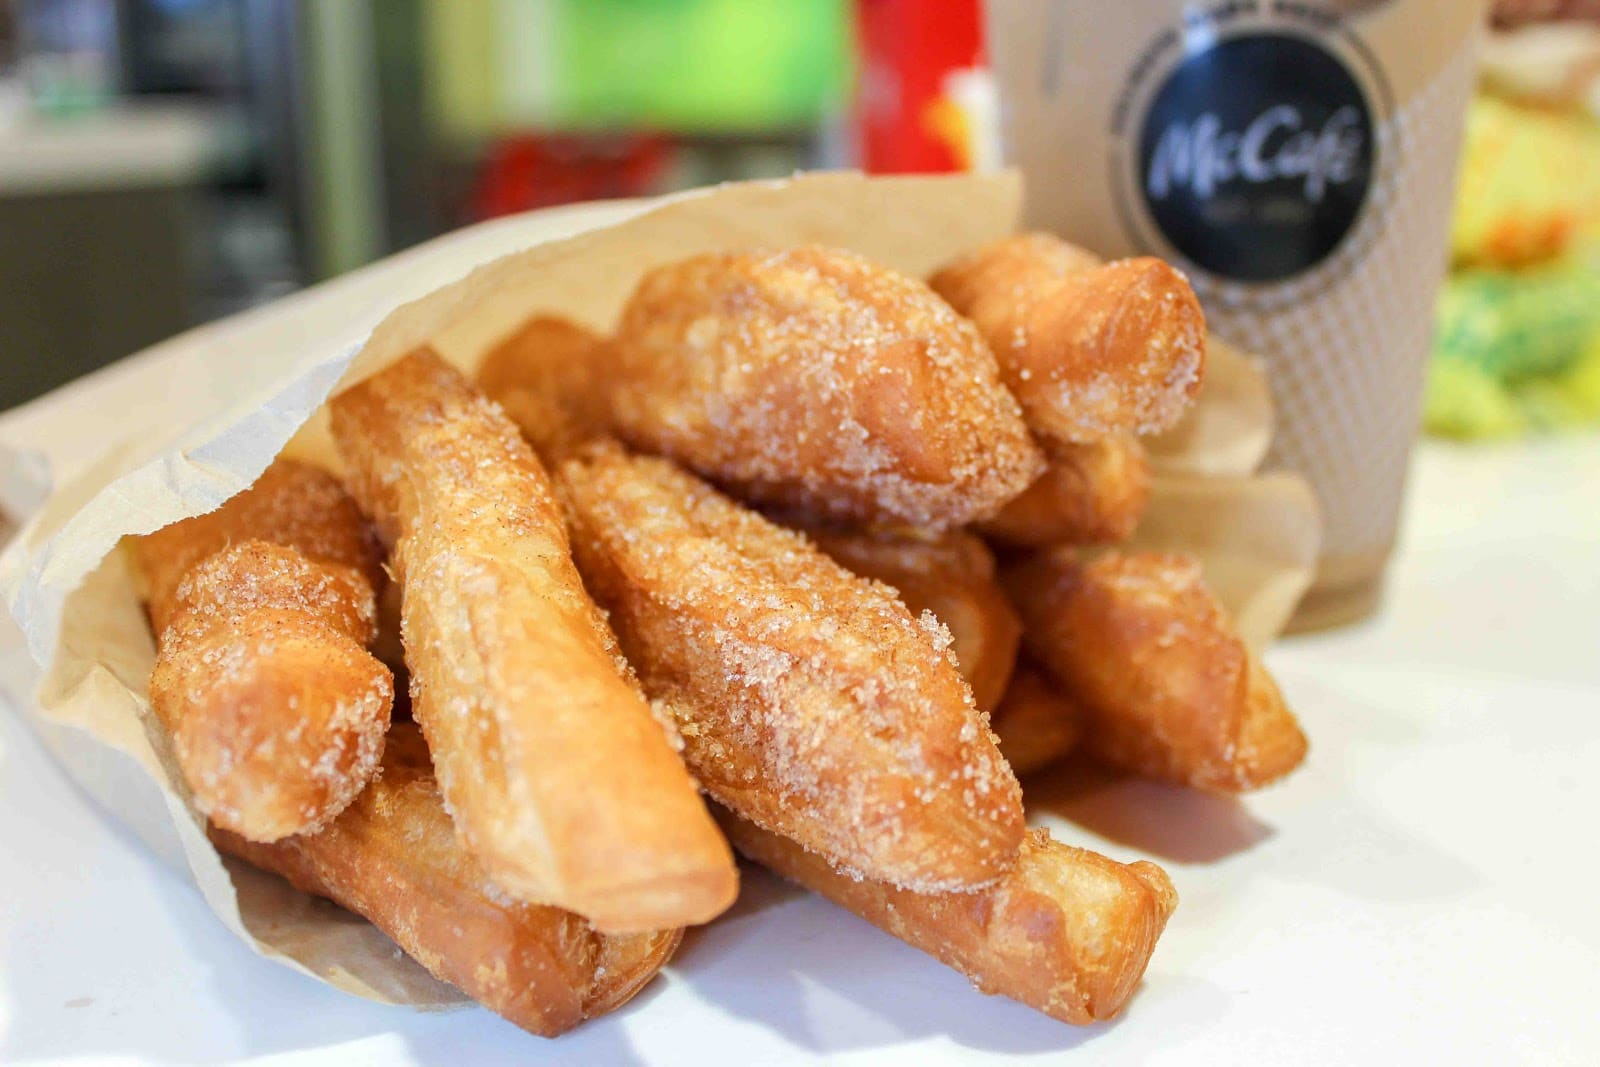 Donut Sticks are here! Head to your local McDonalds to try them! They're light, crispy and dusted with cinnamon sugar! yum!